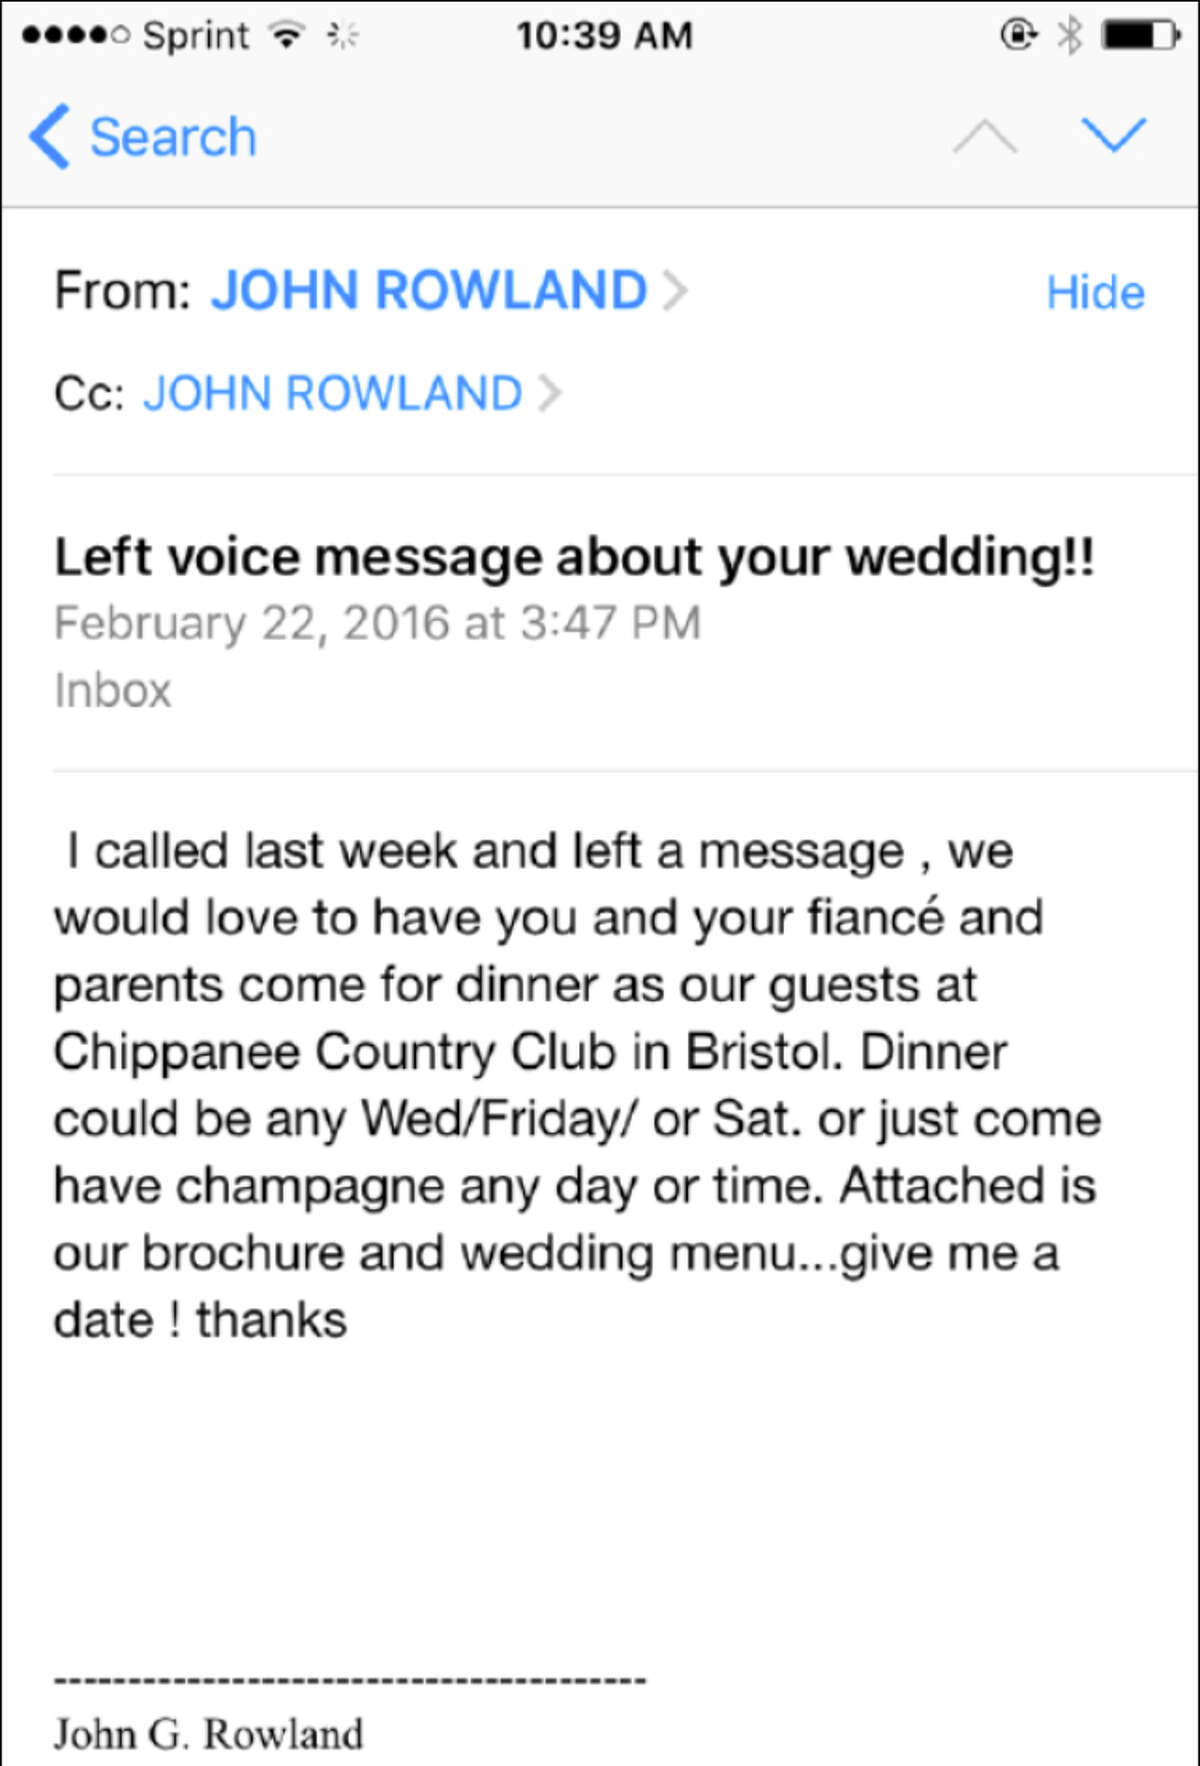 An email message from former Gov. John Rowland to a potential client at the Chippanee Country Club.